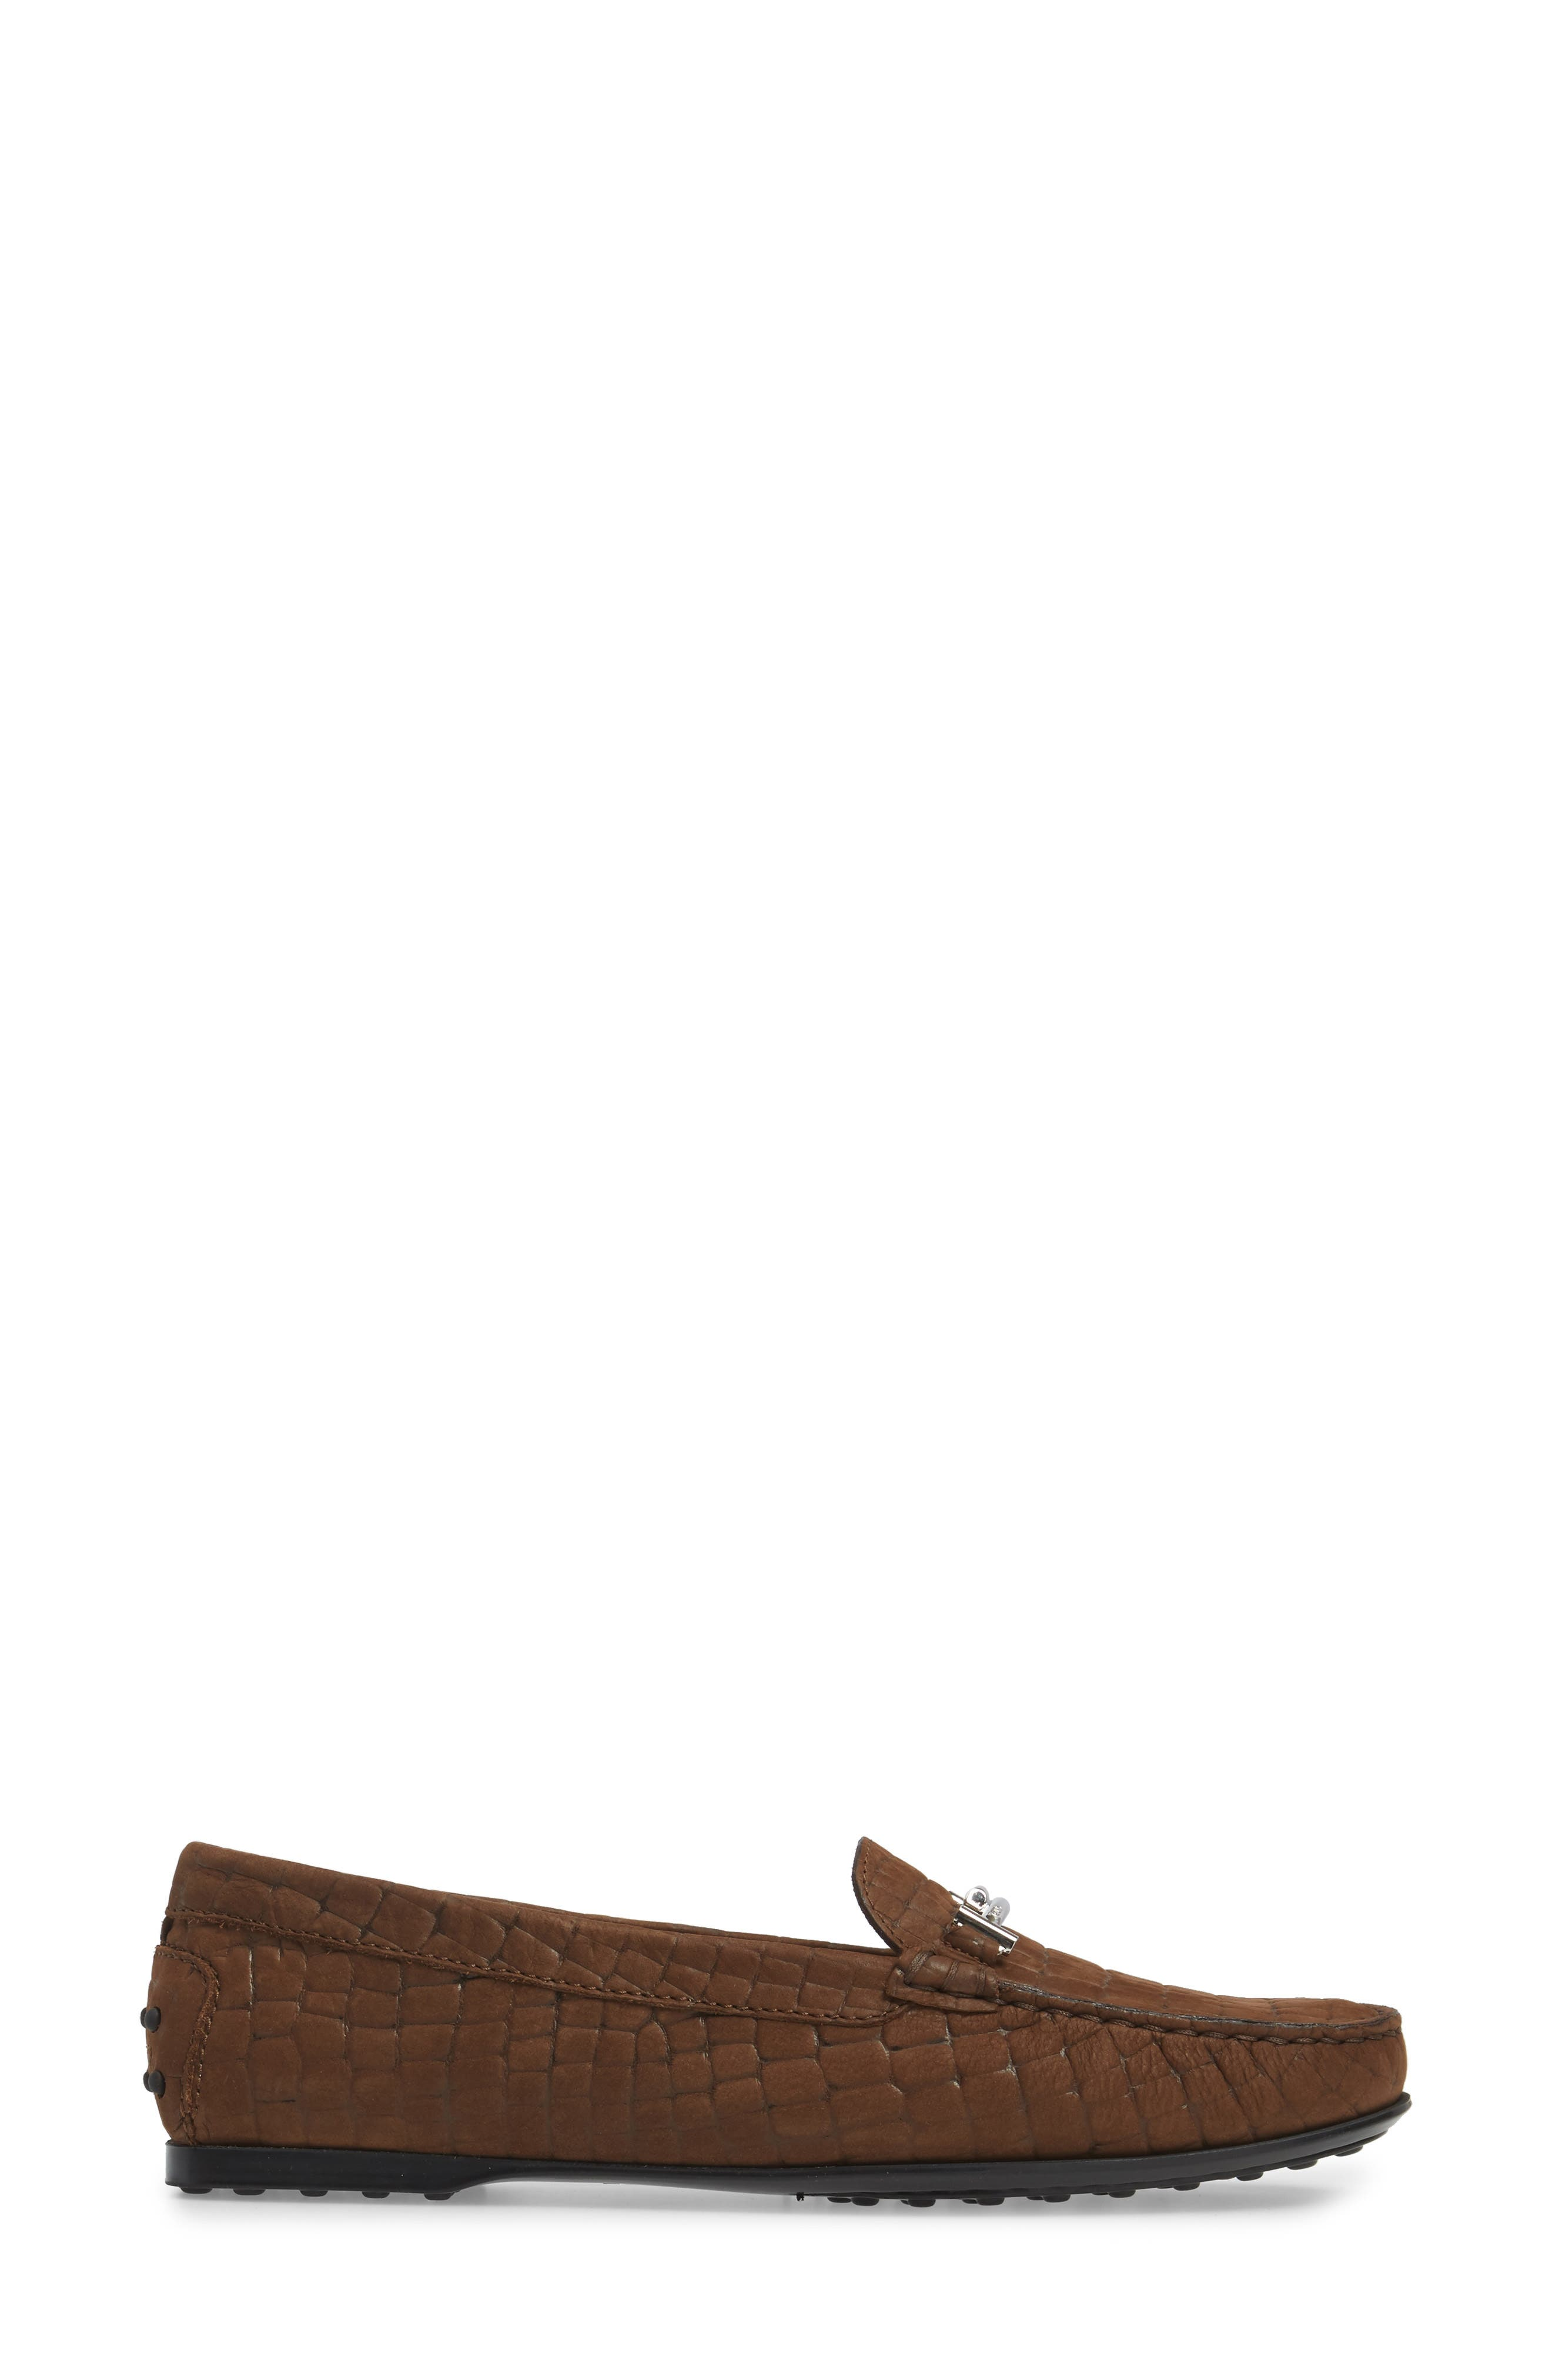 Tods Croc Embossed Double T Loafer,                             Alternate thumbnail 3, color,                             249